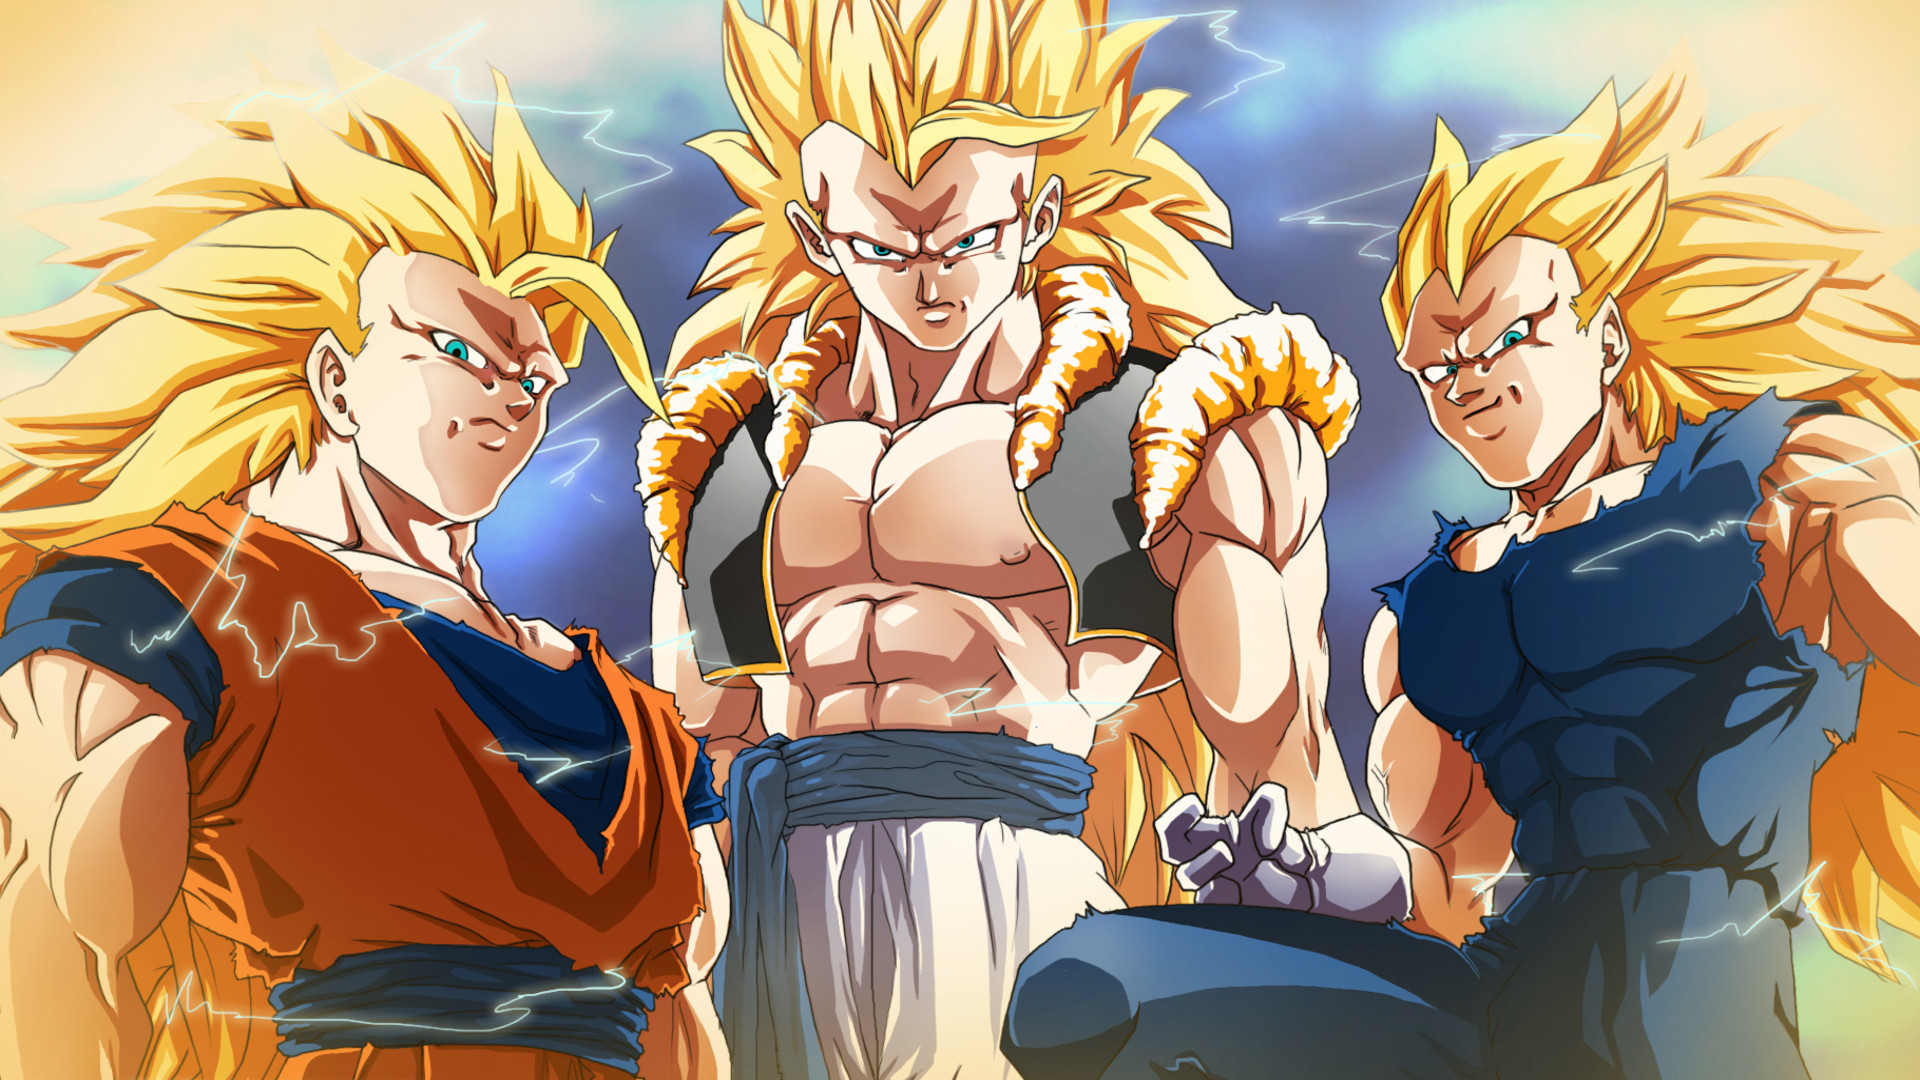 1920x1080 Goku Super Saiyan 3 Wallpaper